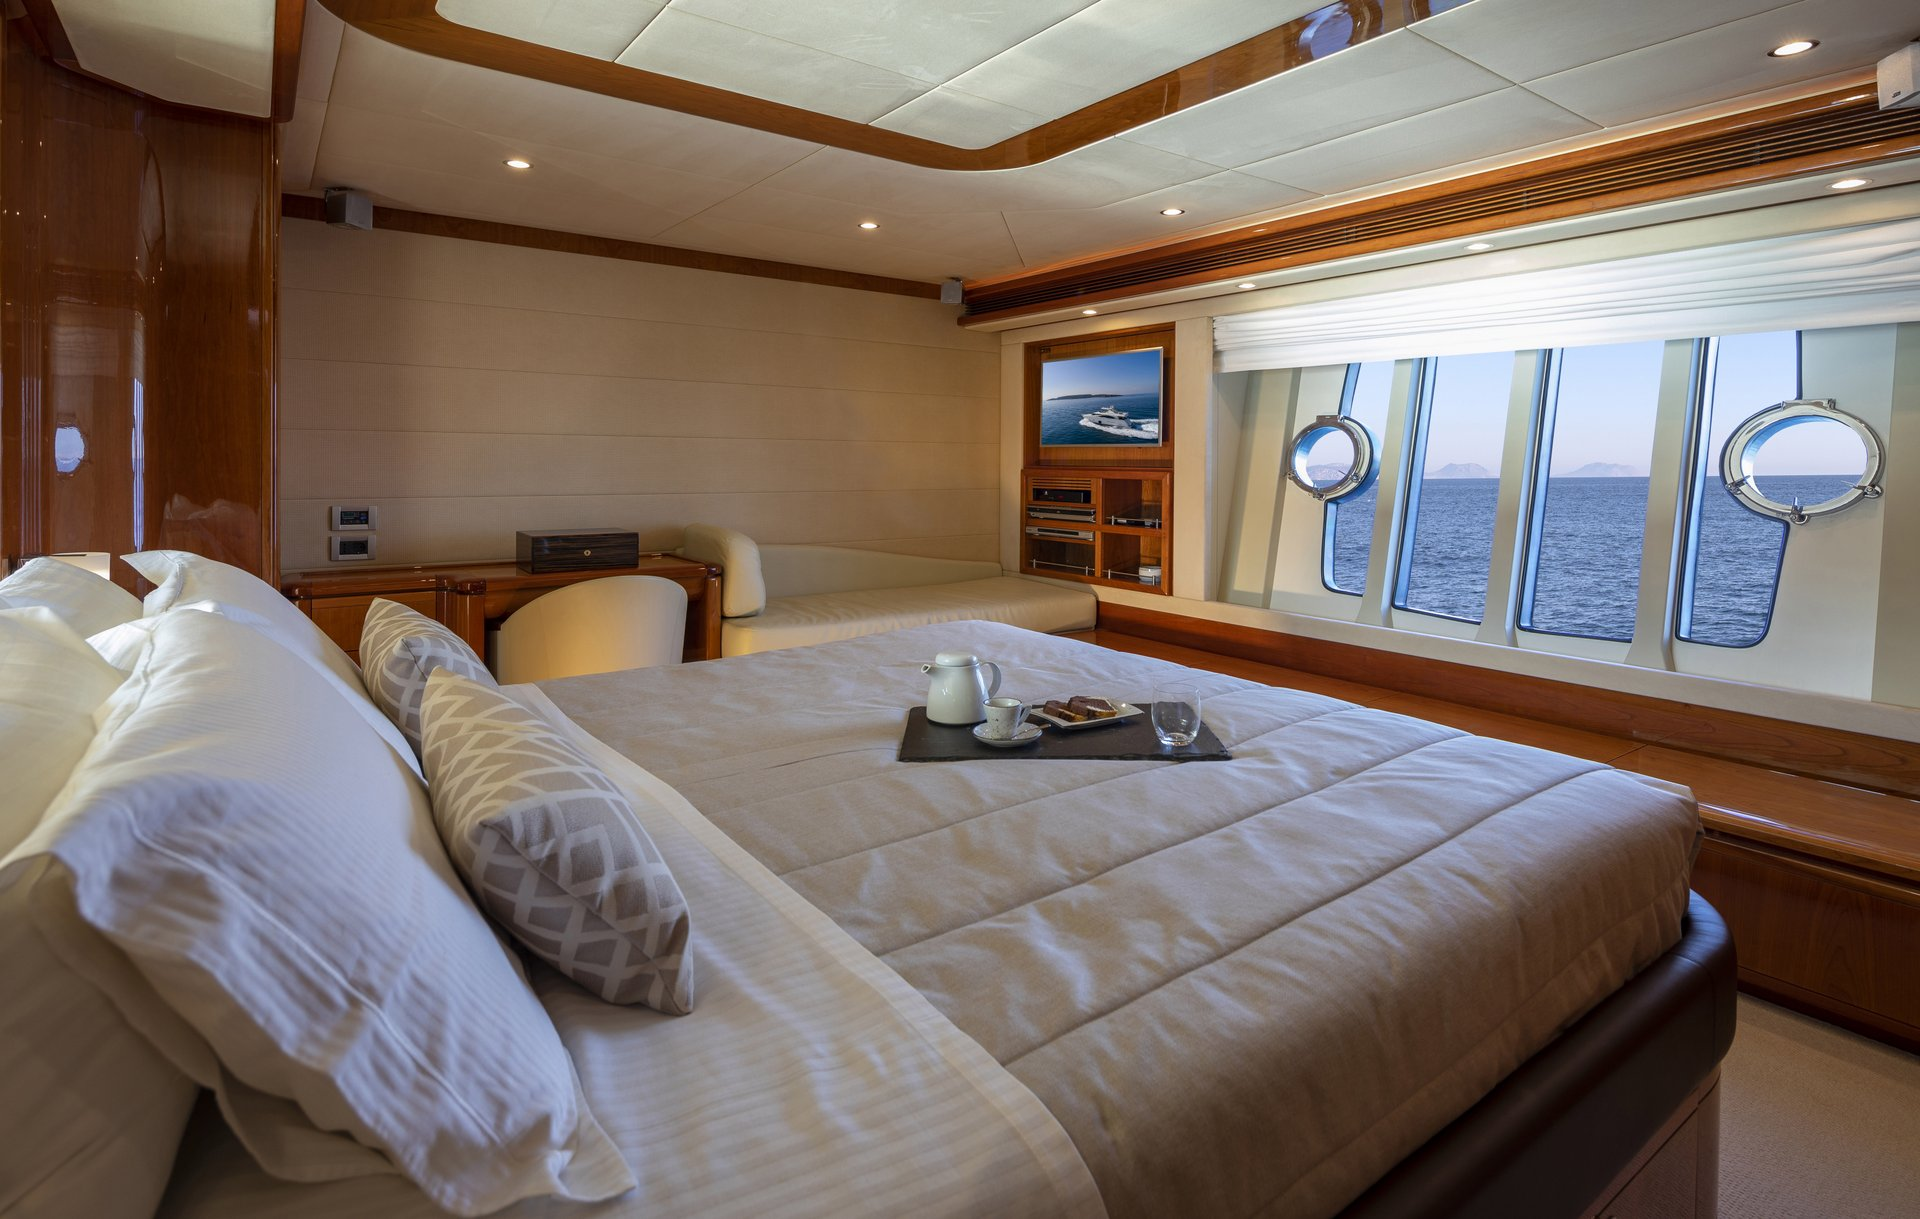 m/y astarte yacht for charter master cabin